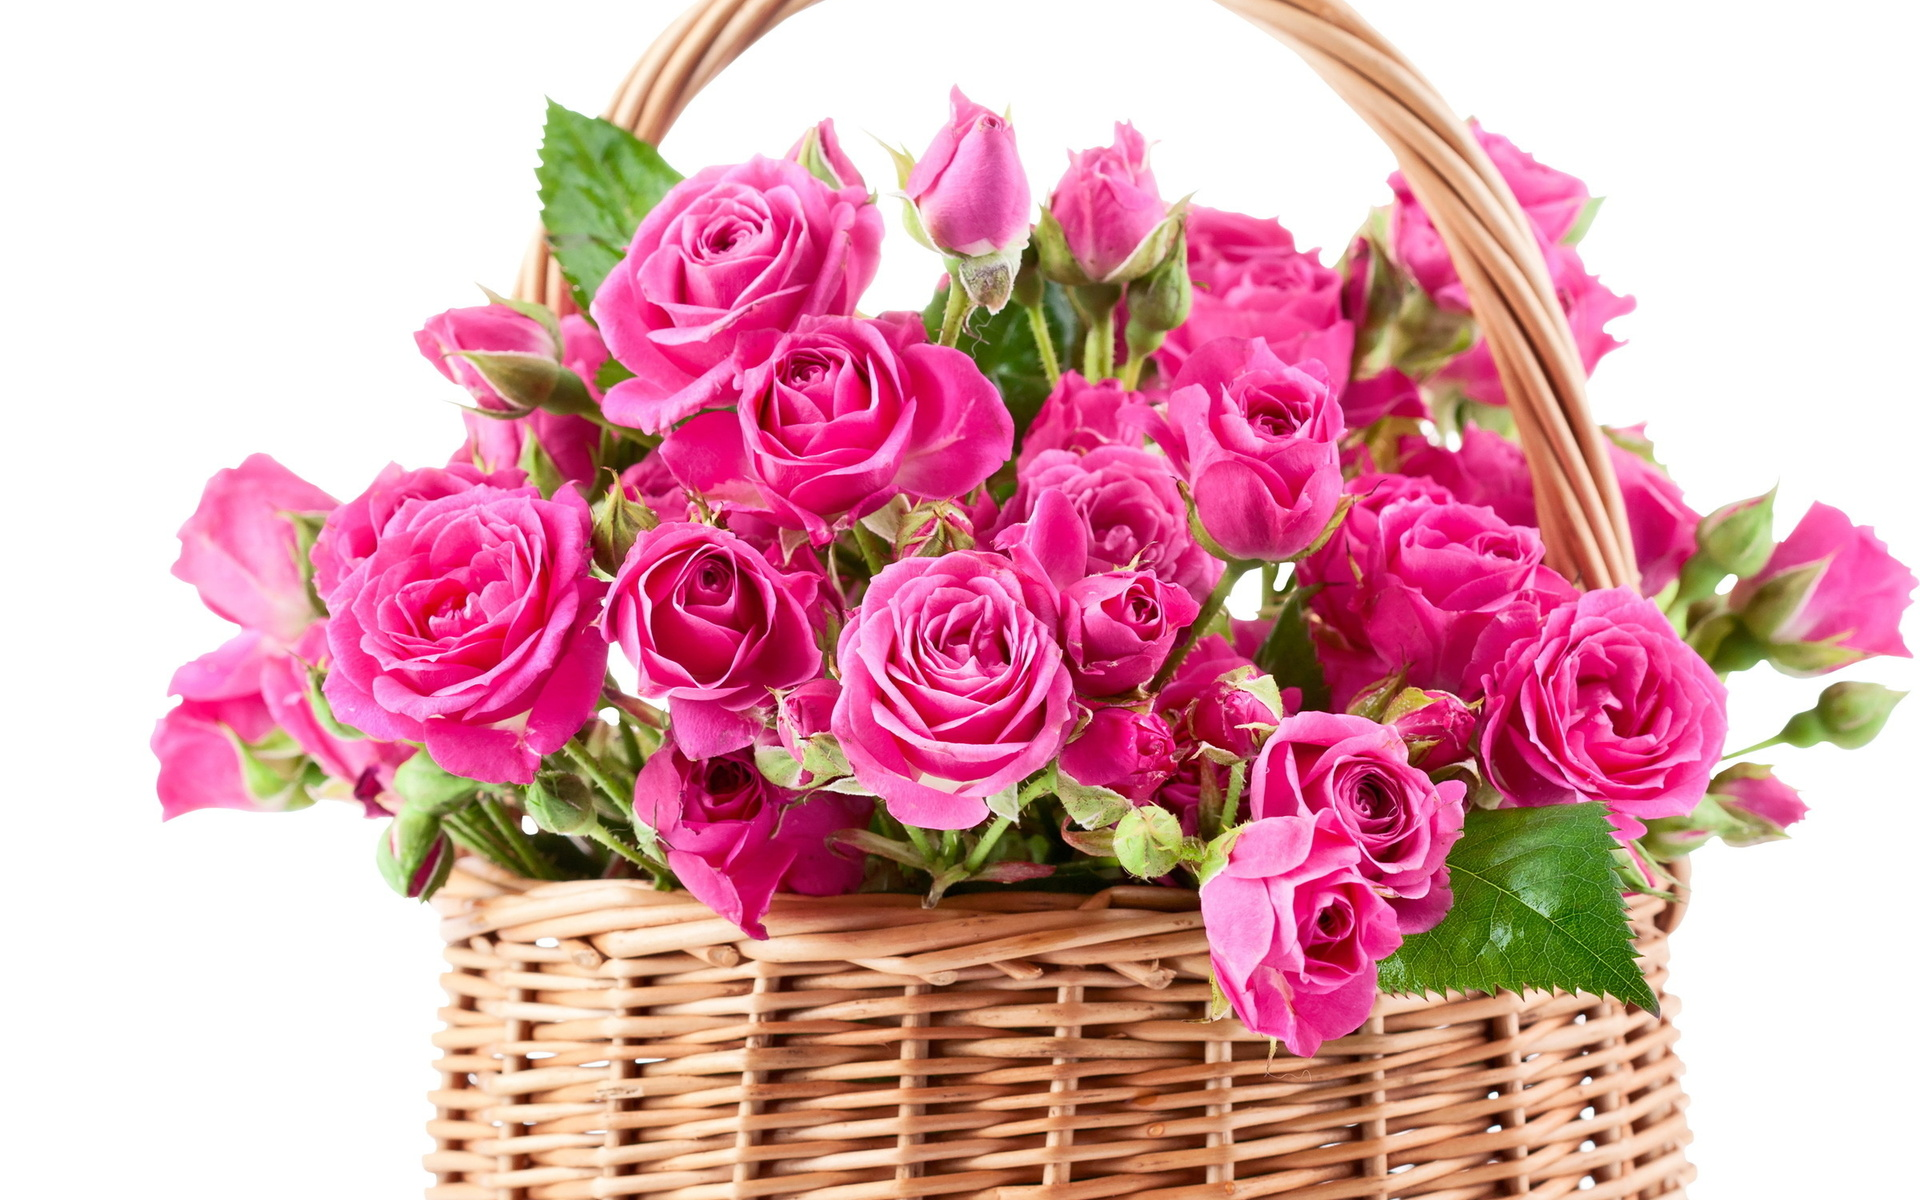 Bouquet of flowers wallpapers high quality download free bouquet of flowers wallpapers izmirmasajfo